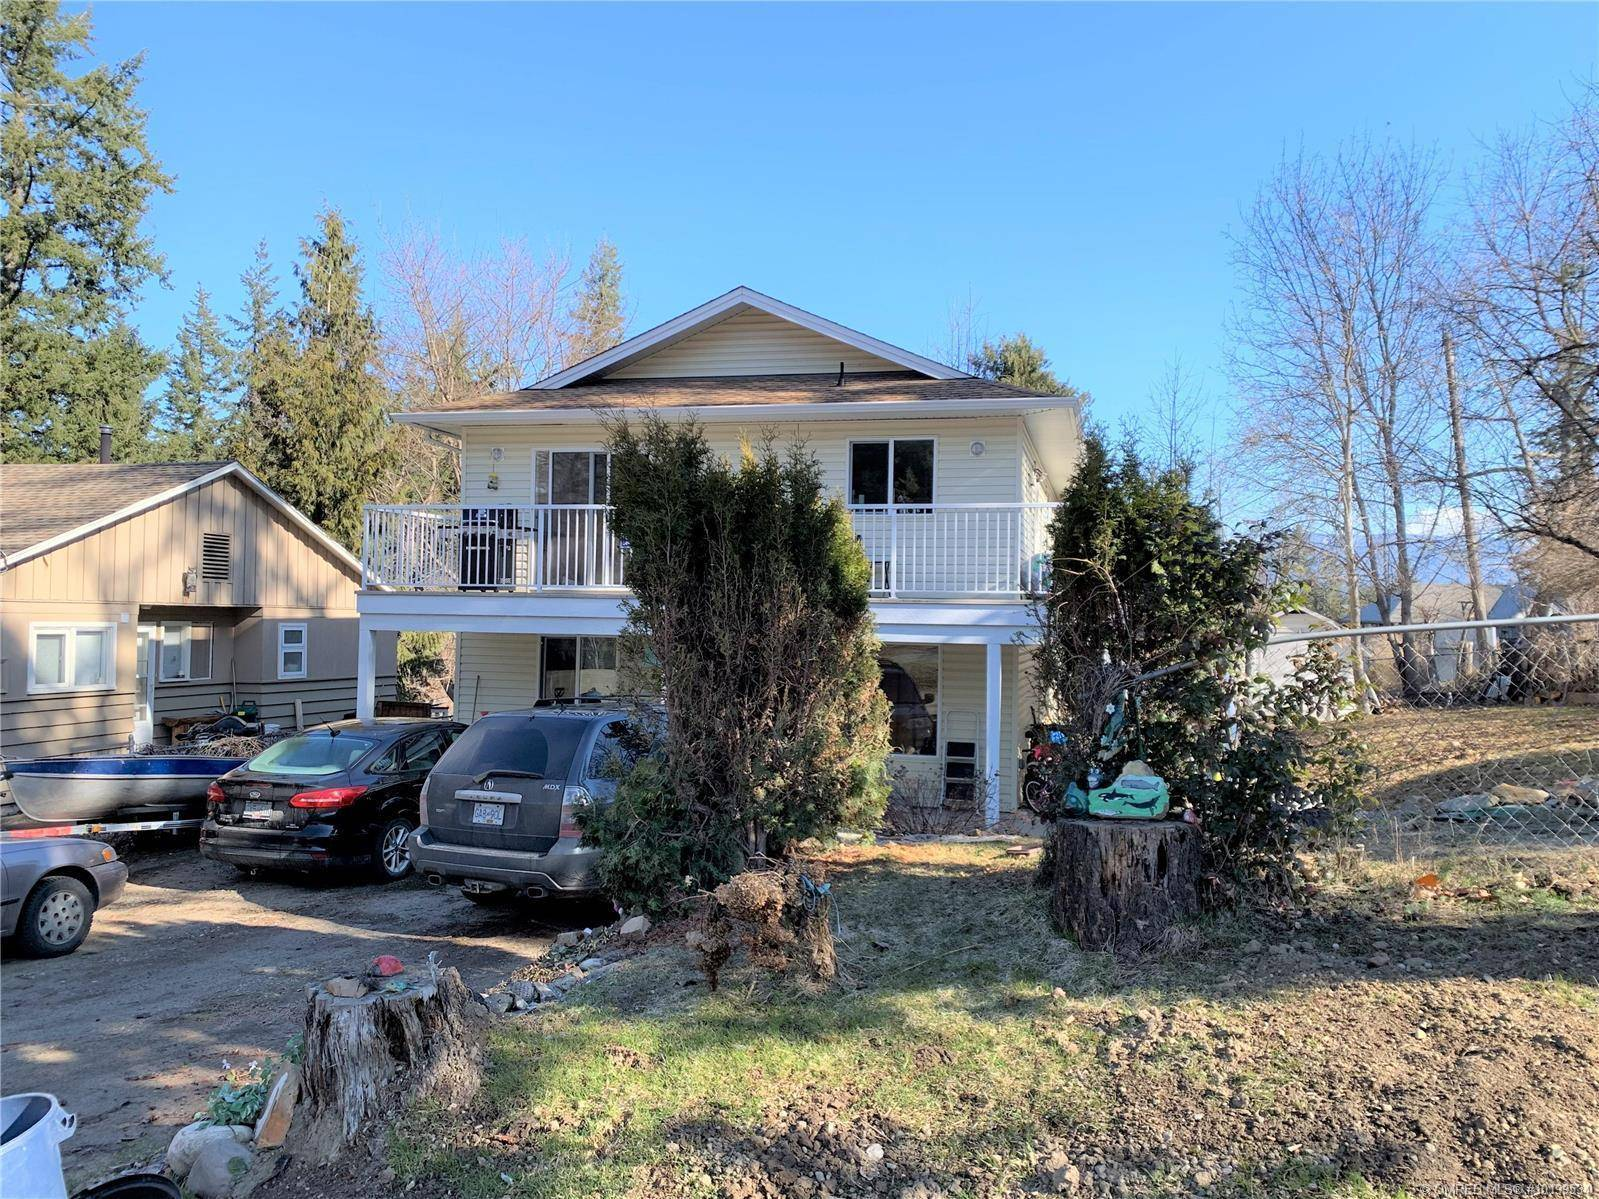 House for sale at 391 10 Ave Southeast Salmon Arm British Columbia - MLS: 10199534